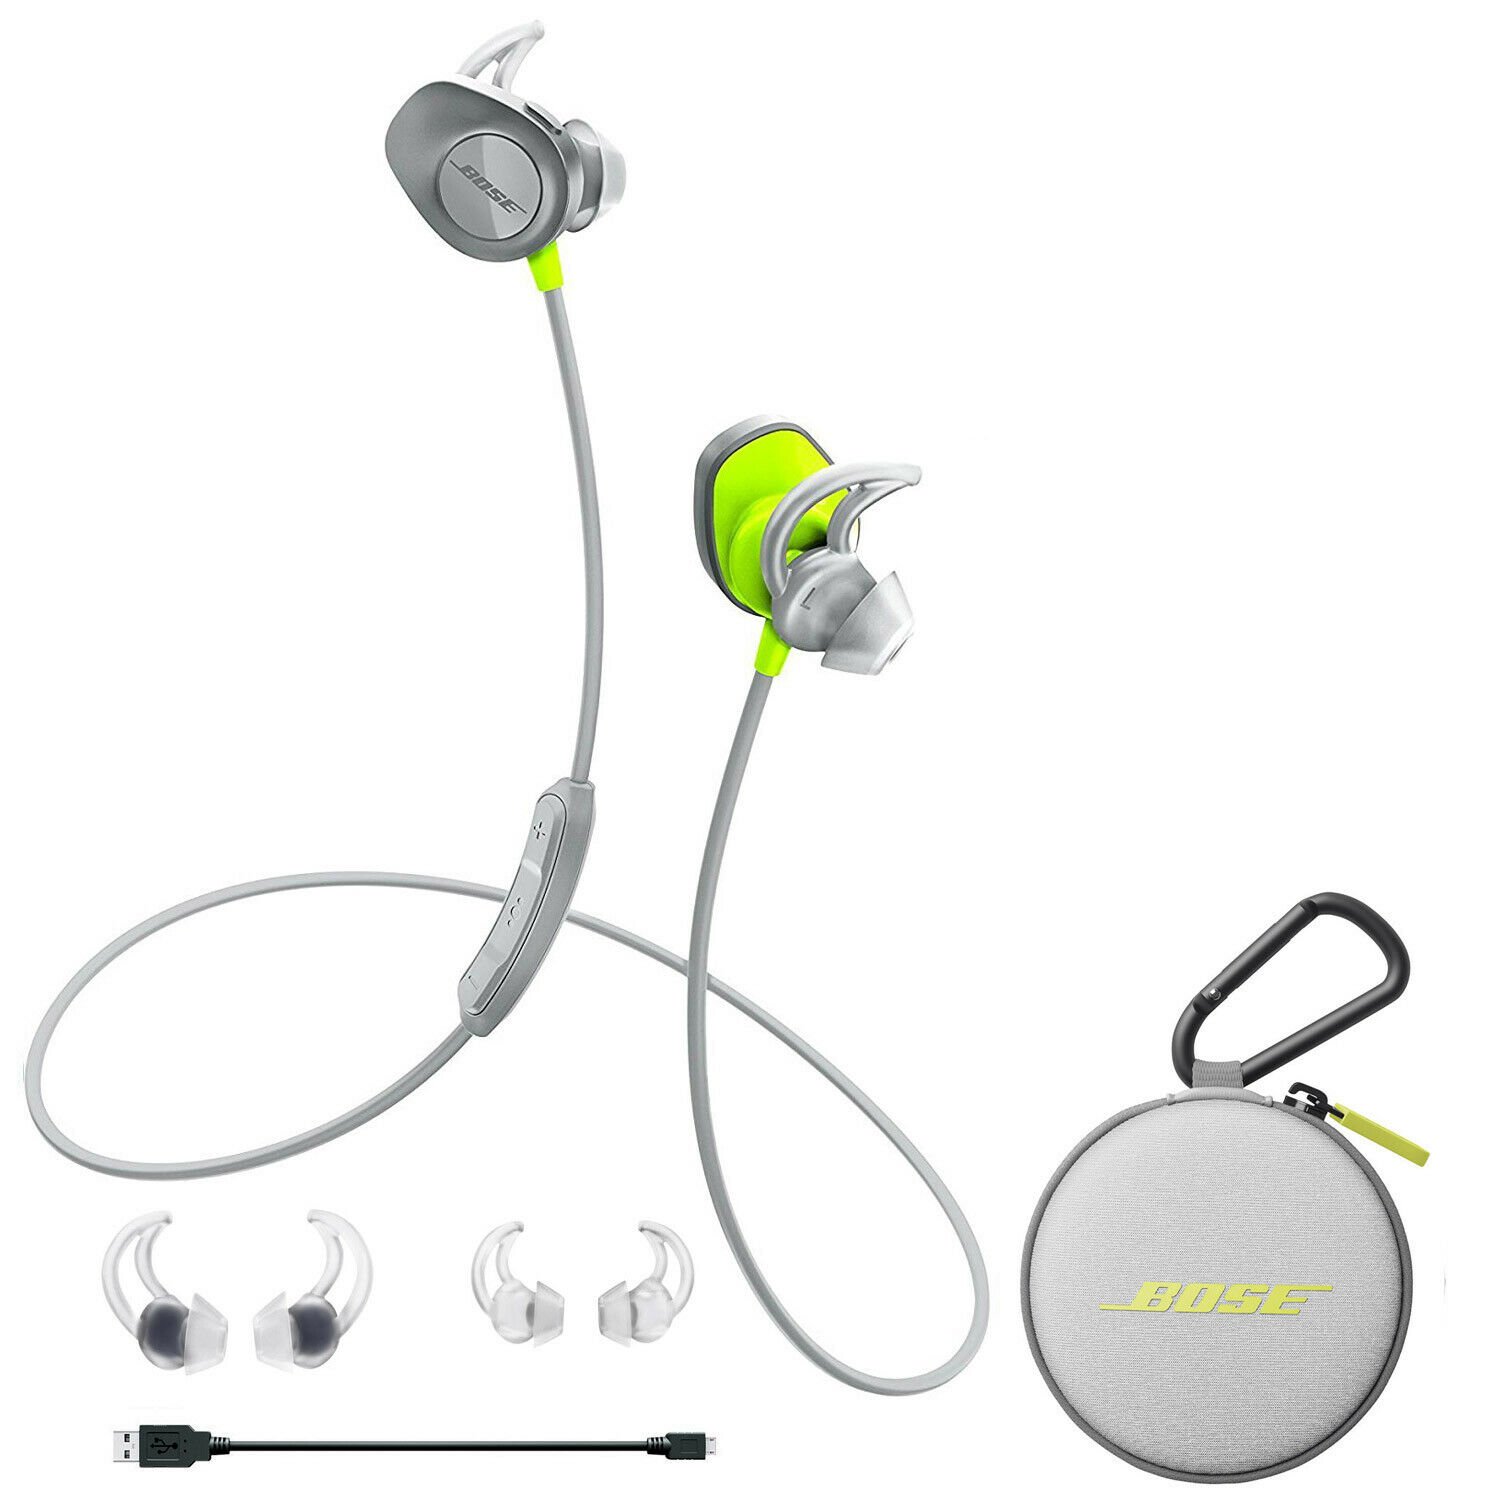 Bose Soundsport Wireless In Ear Headphones Nfc Citron Free 2 Earphone Navy Day Shipping 1 Of 6 See More